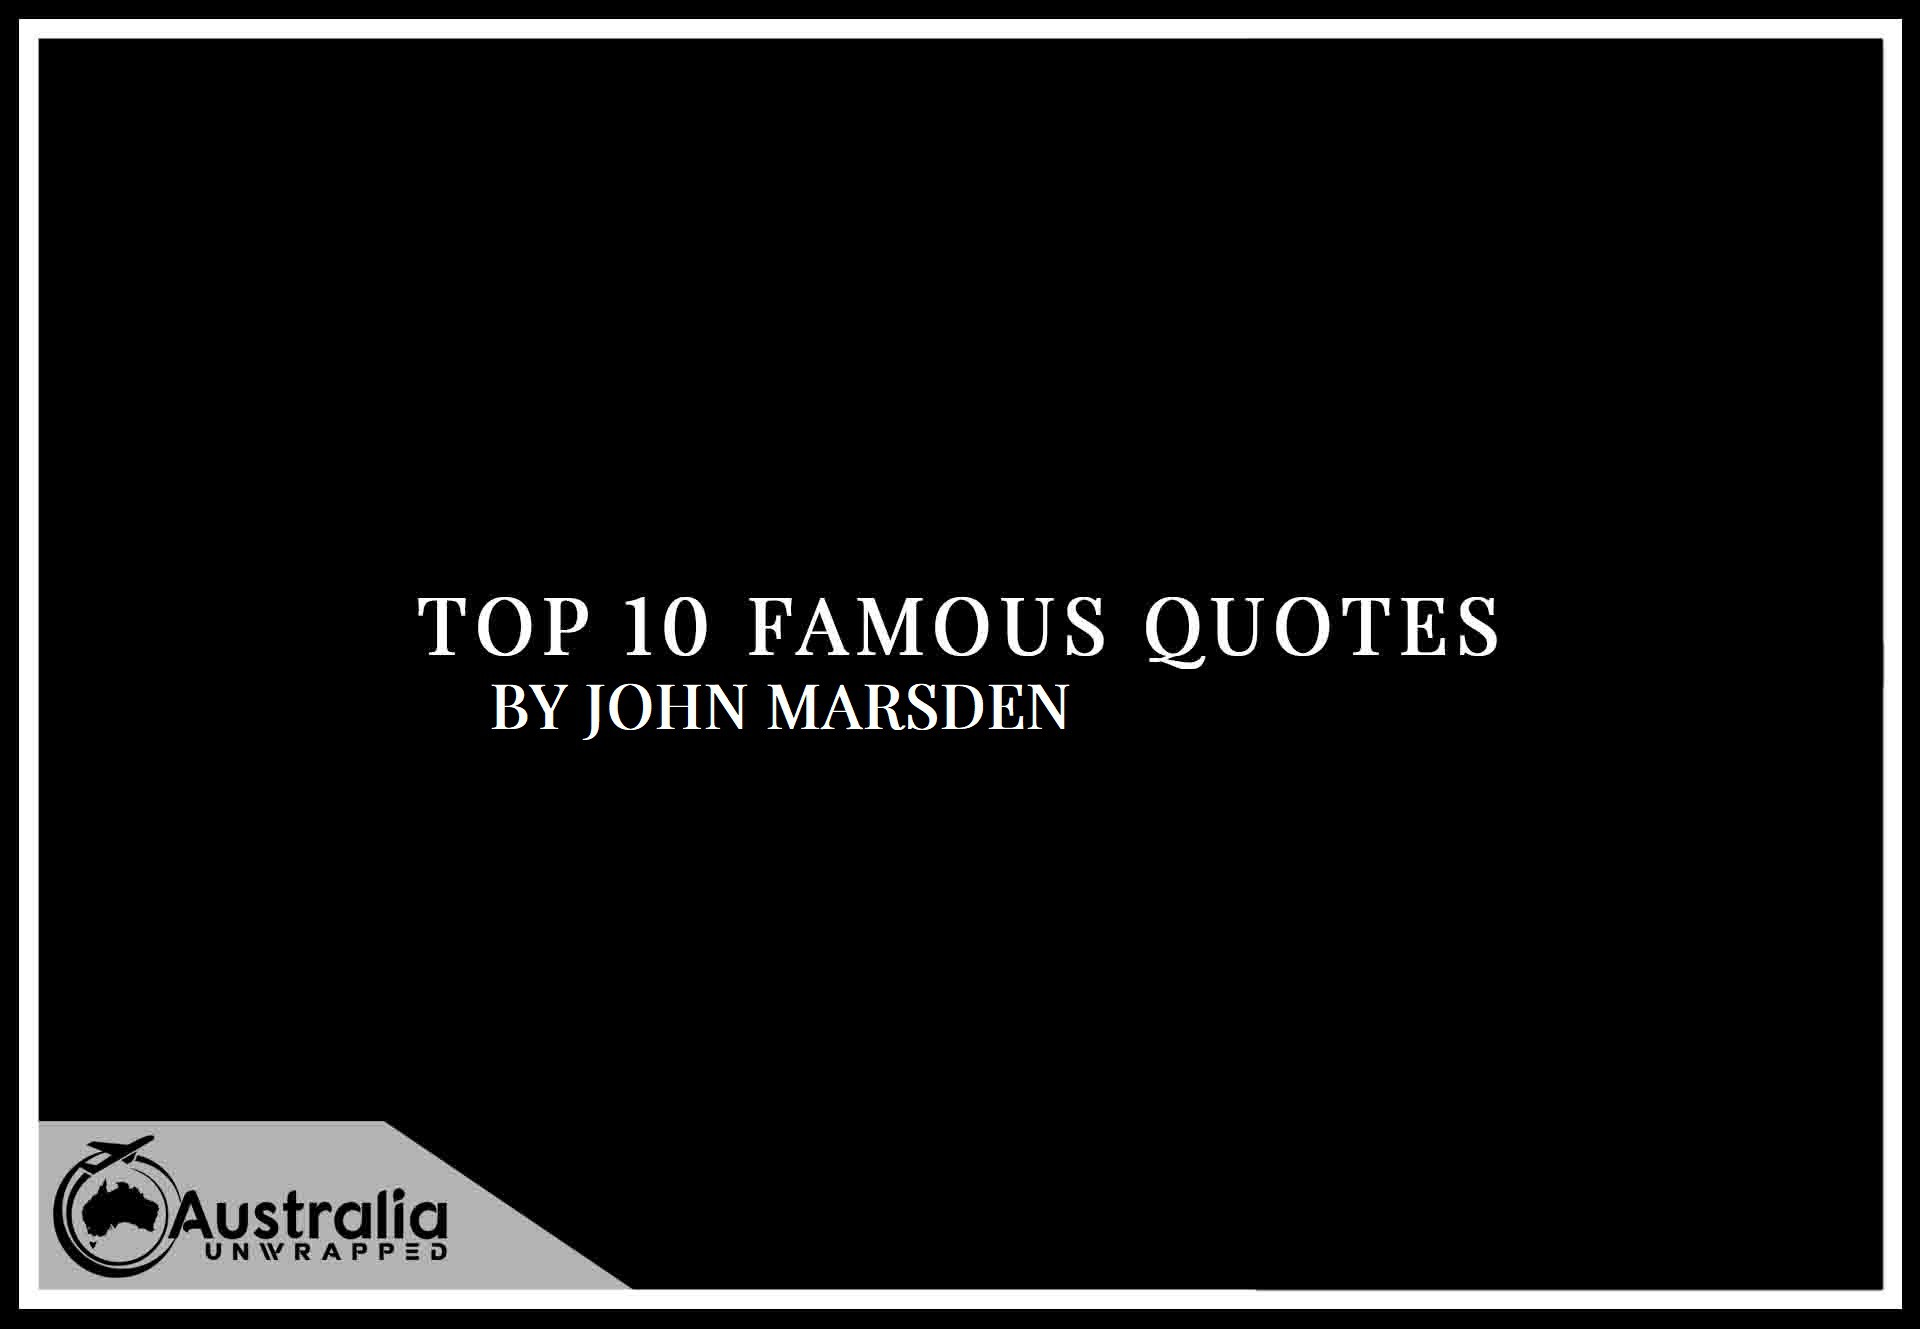 Top 10 Famous Quotes by Author John Marsden